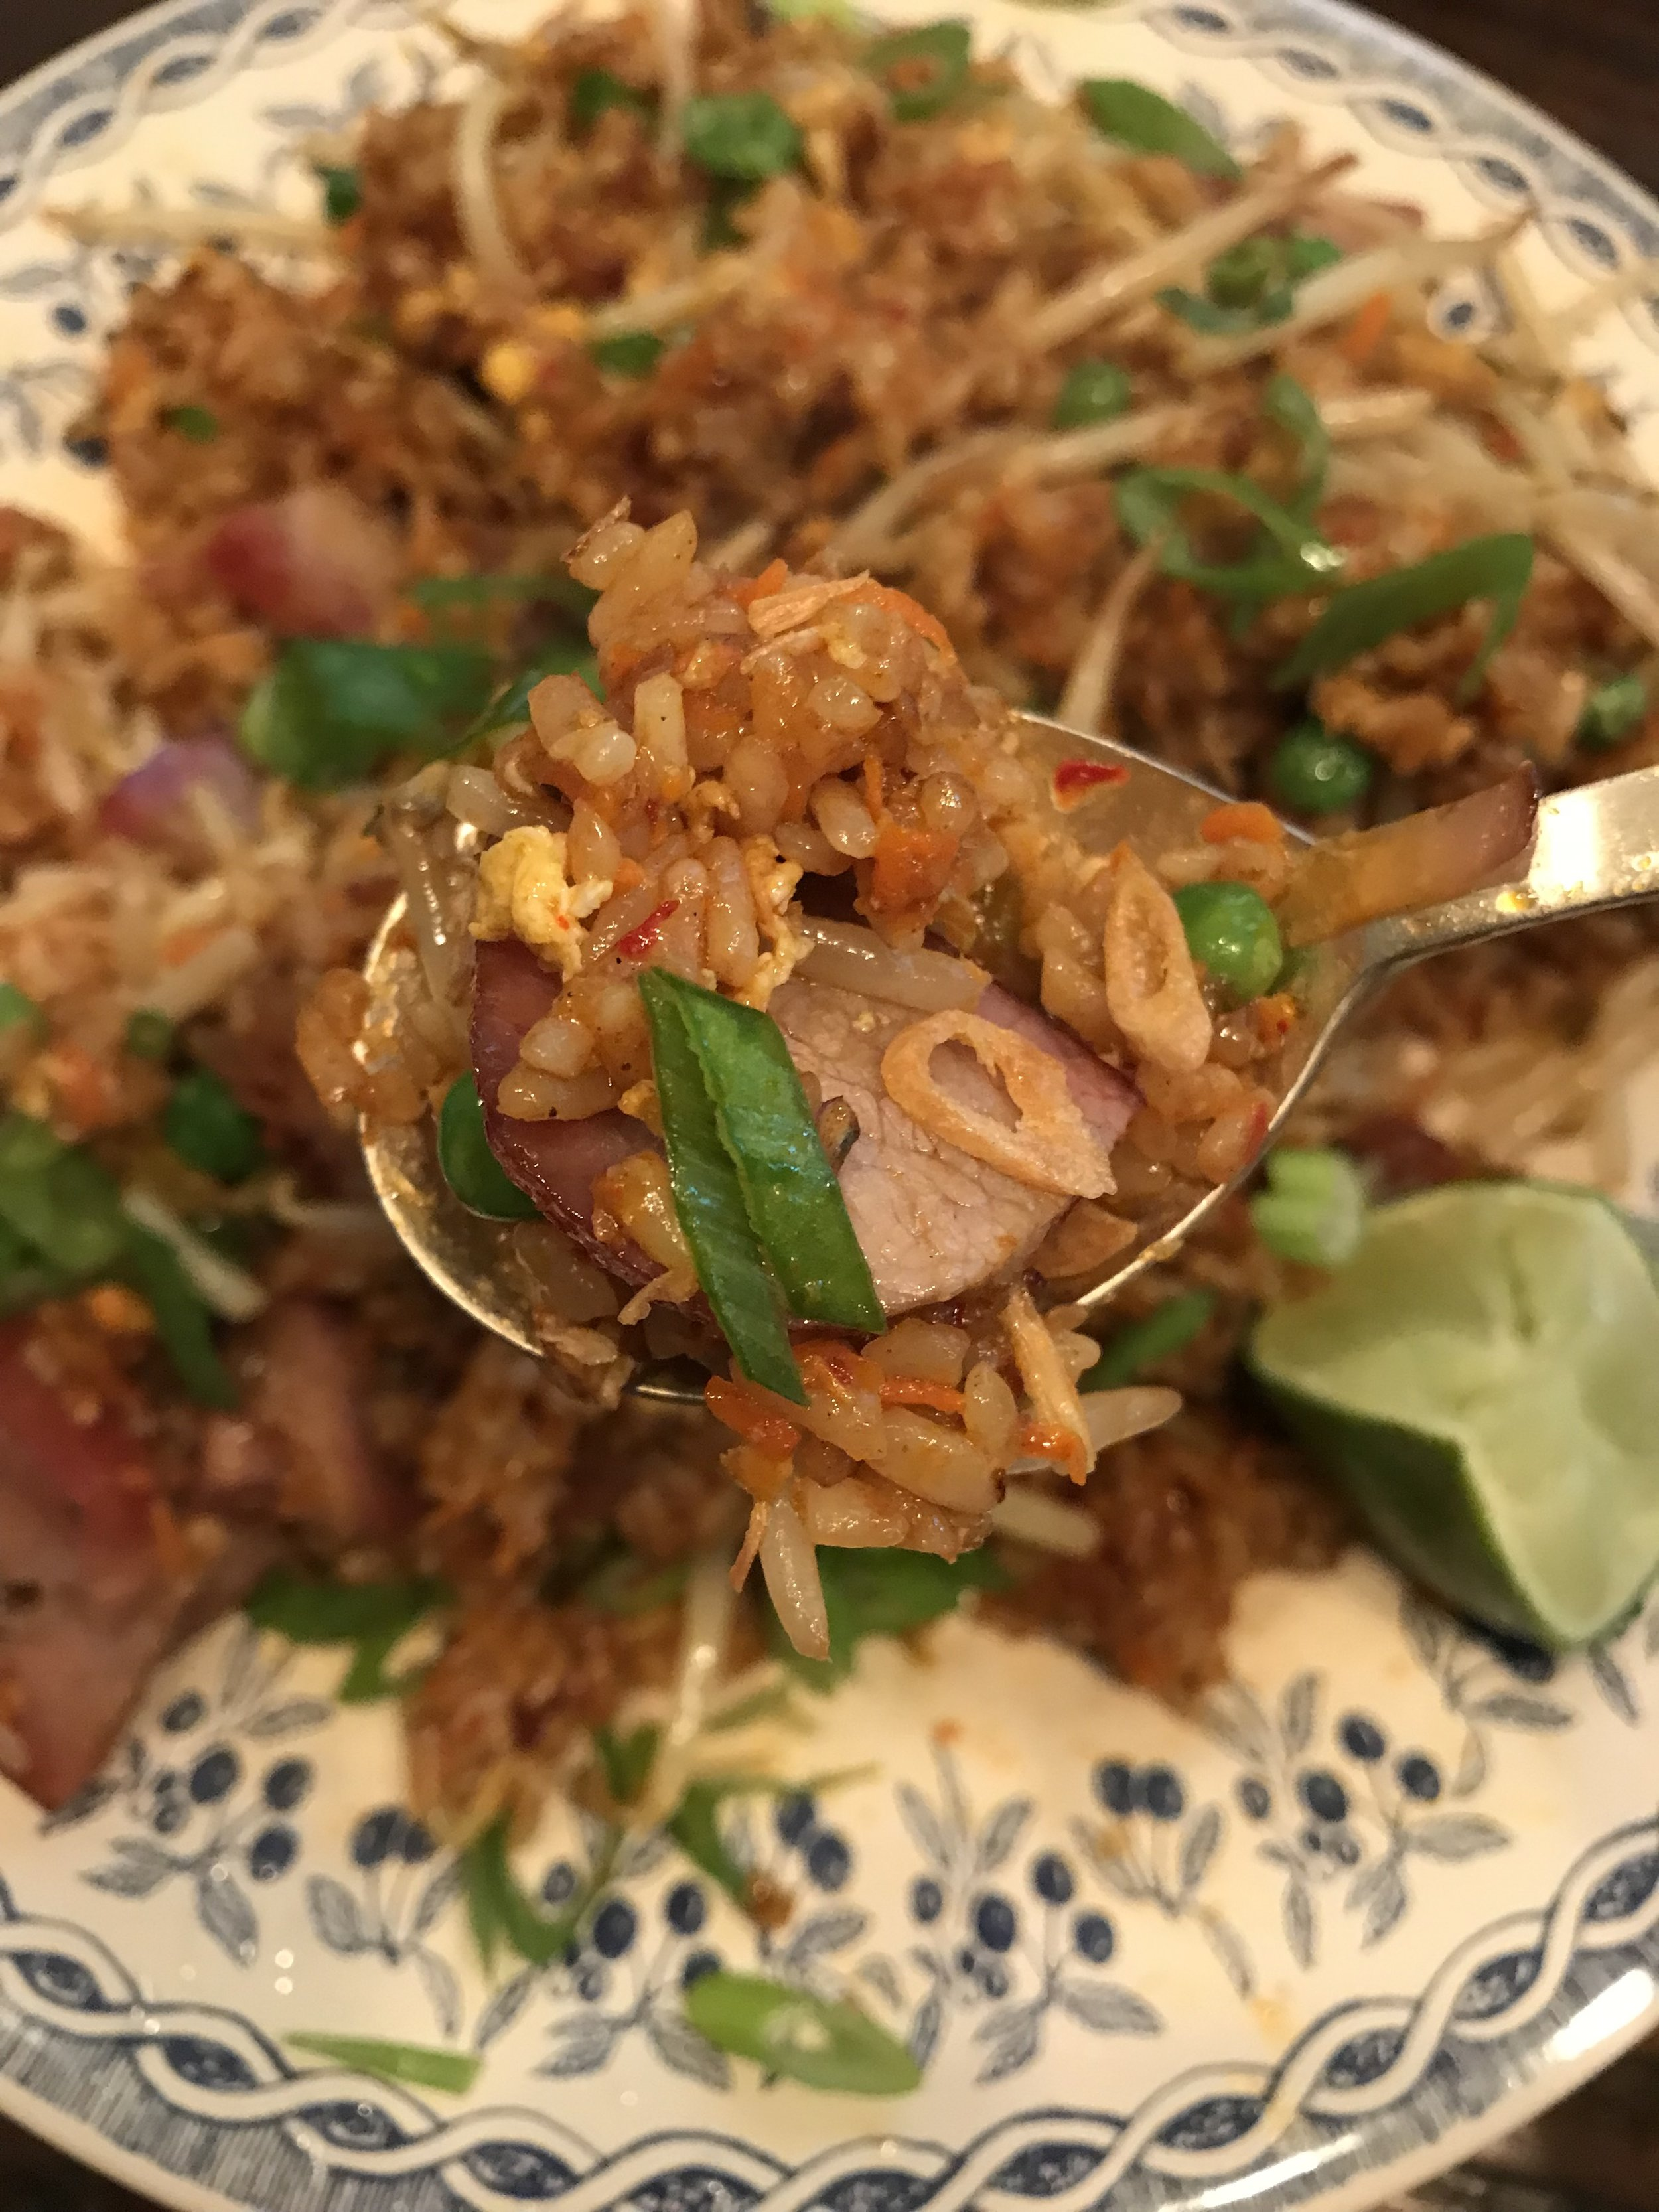 NASI GORENG (INDONESIAN FRIED RICE)  The best fried rice you've never had.